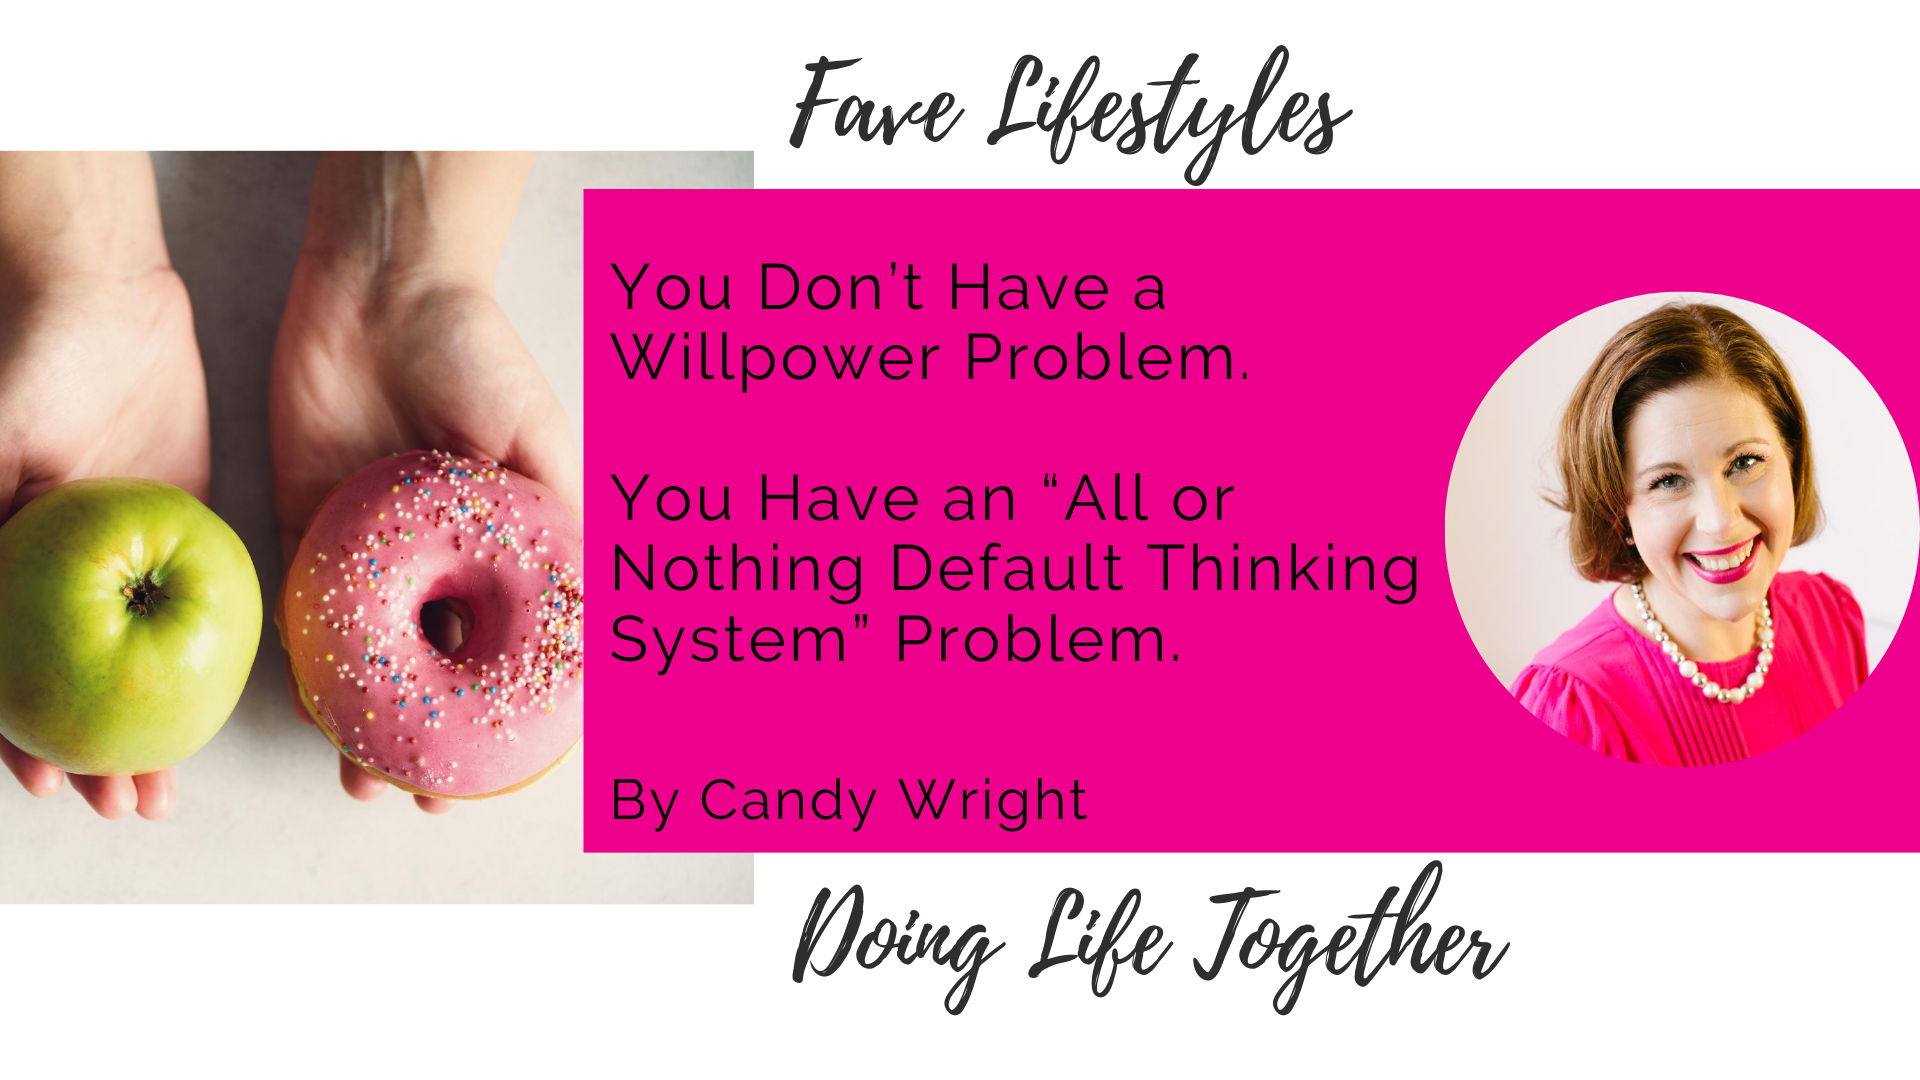 """You don't have a willpower or follow through problem, you have an """"All or Nothing Default Thinking System"""" problem."""